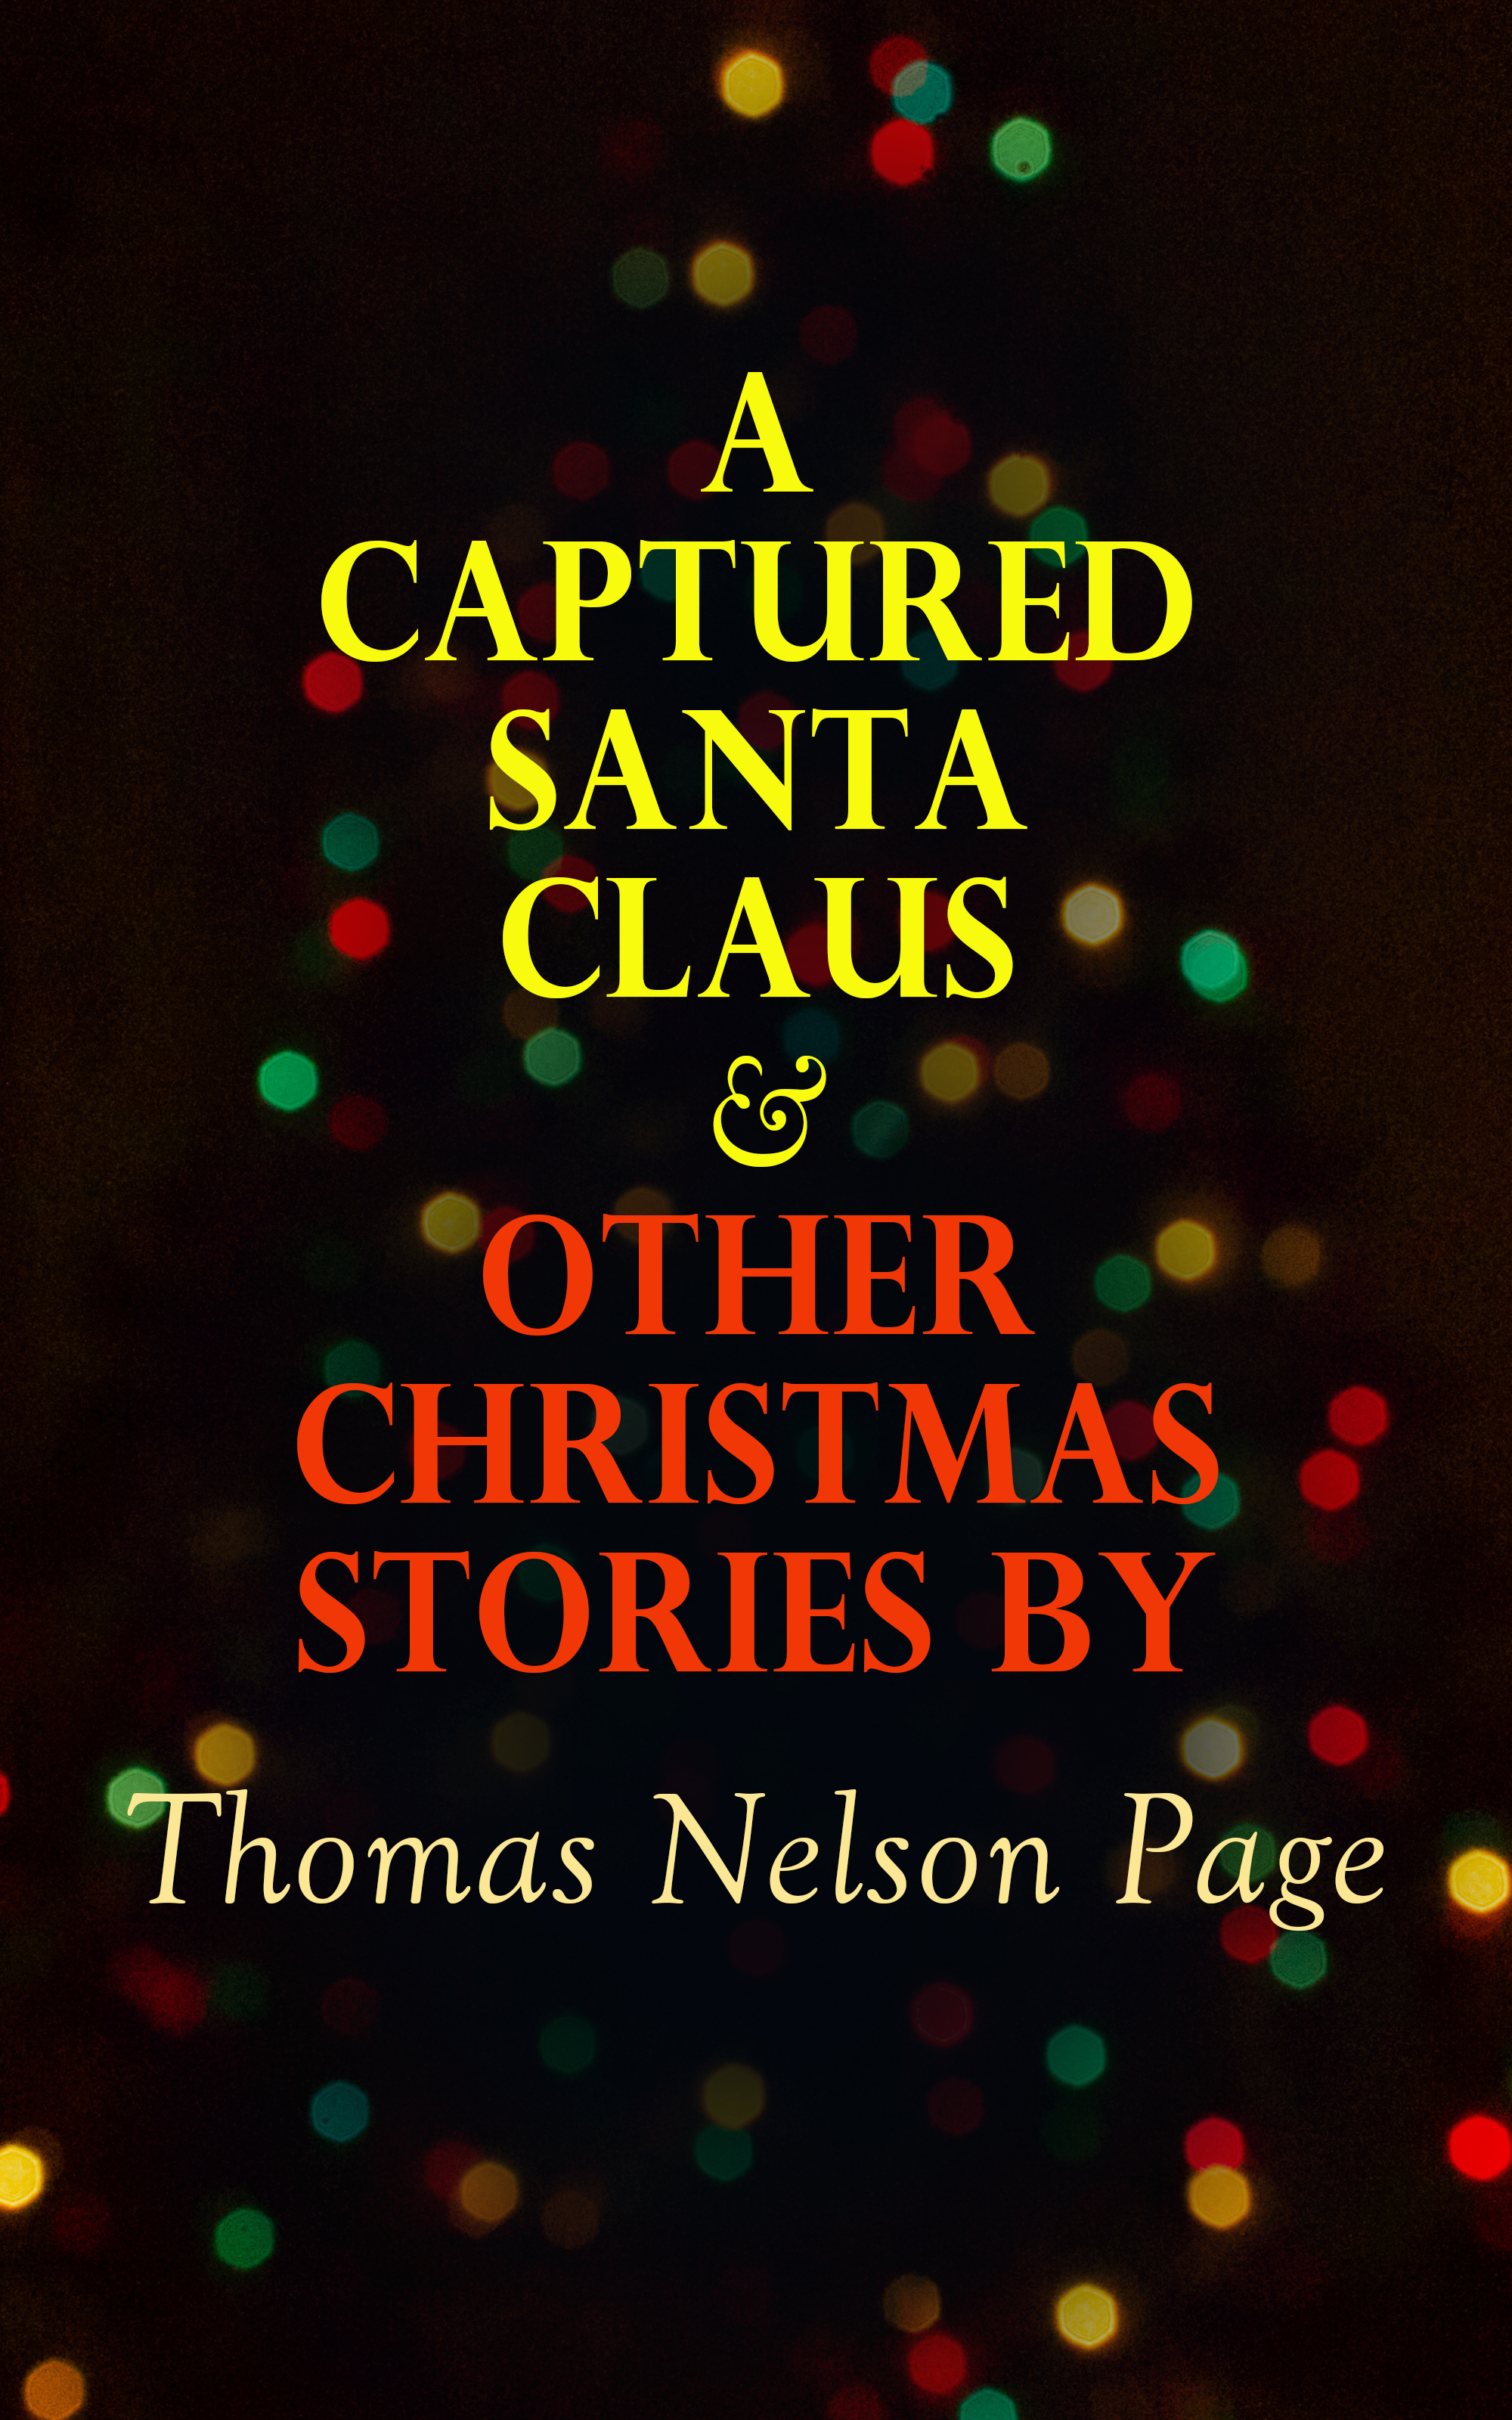 Thomas Nelson Page A Captured Santa Claus & Other Christmas Stories by Thomas Nelson Page sitemap html page 2 page 7 page 2 page 9